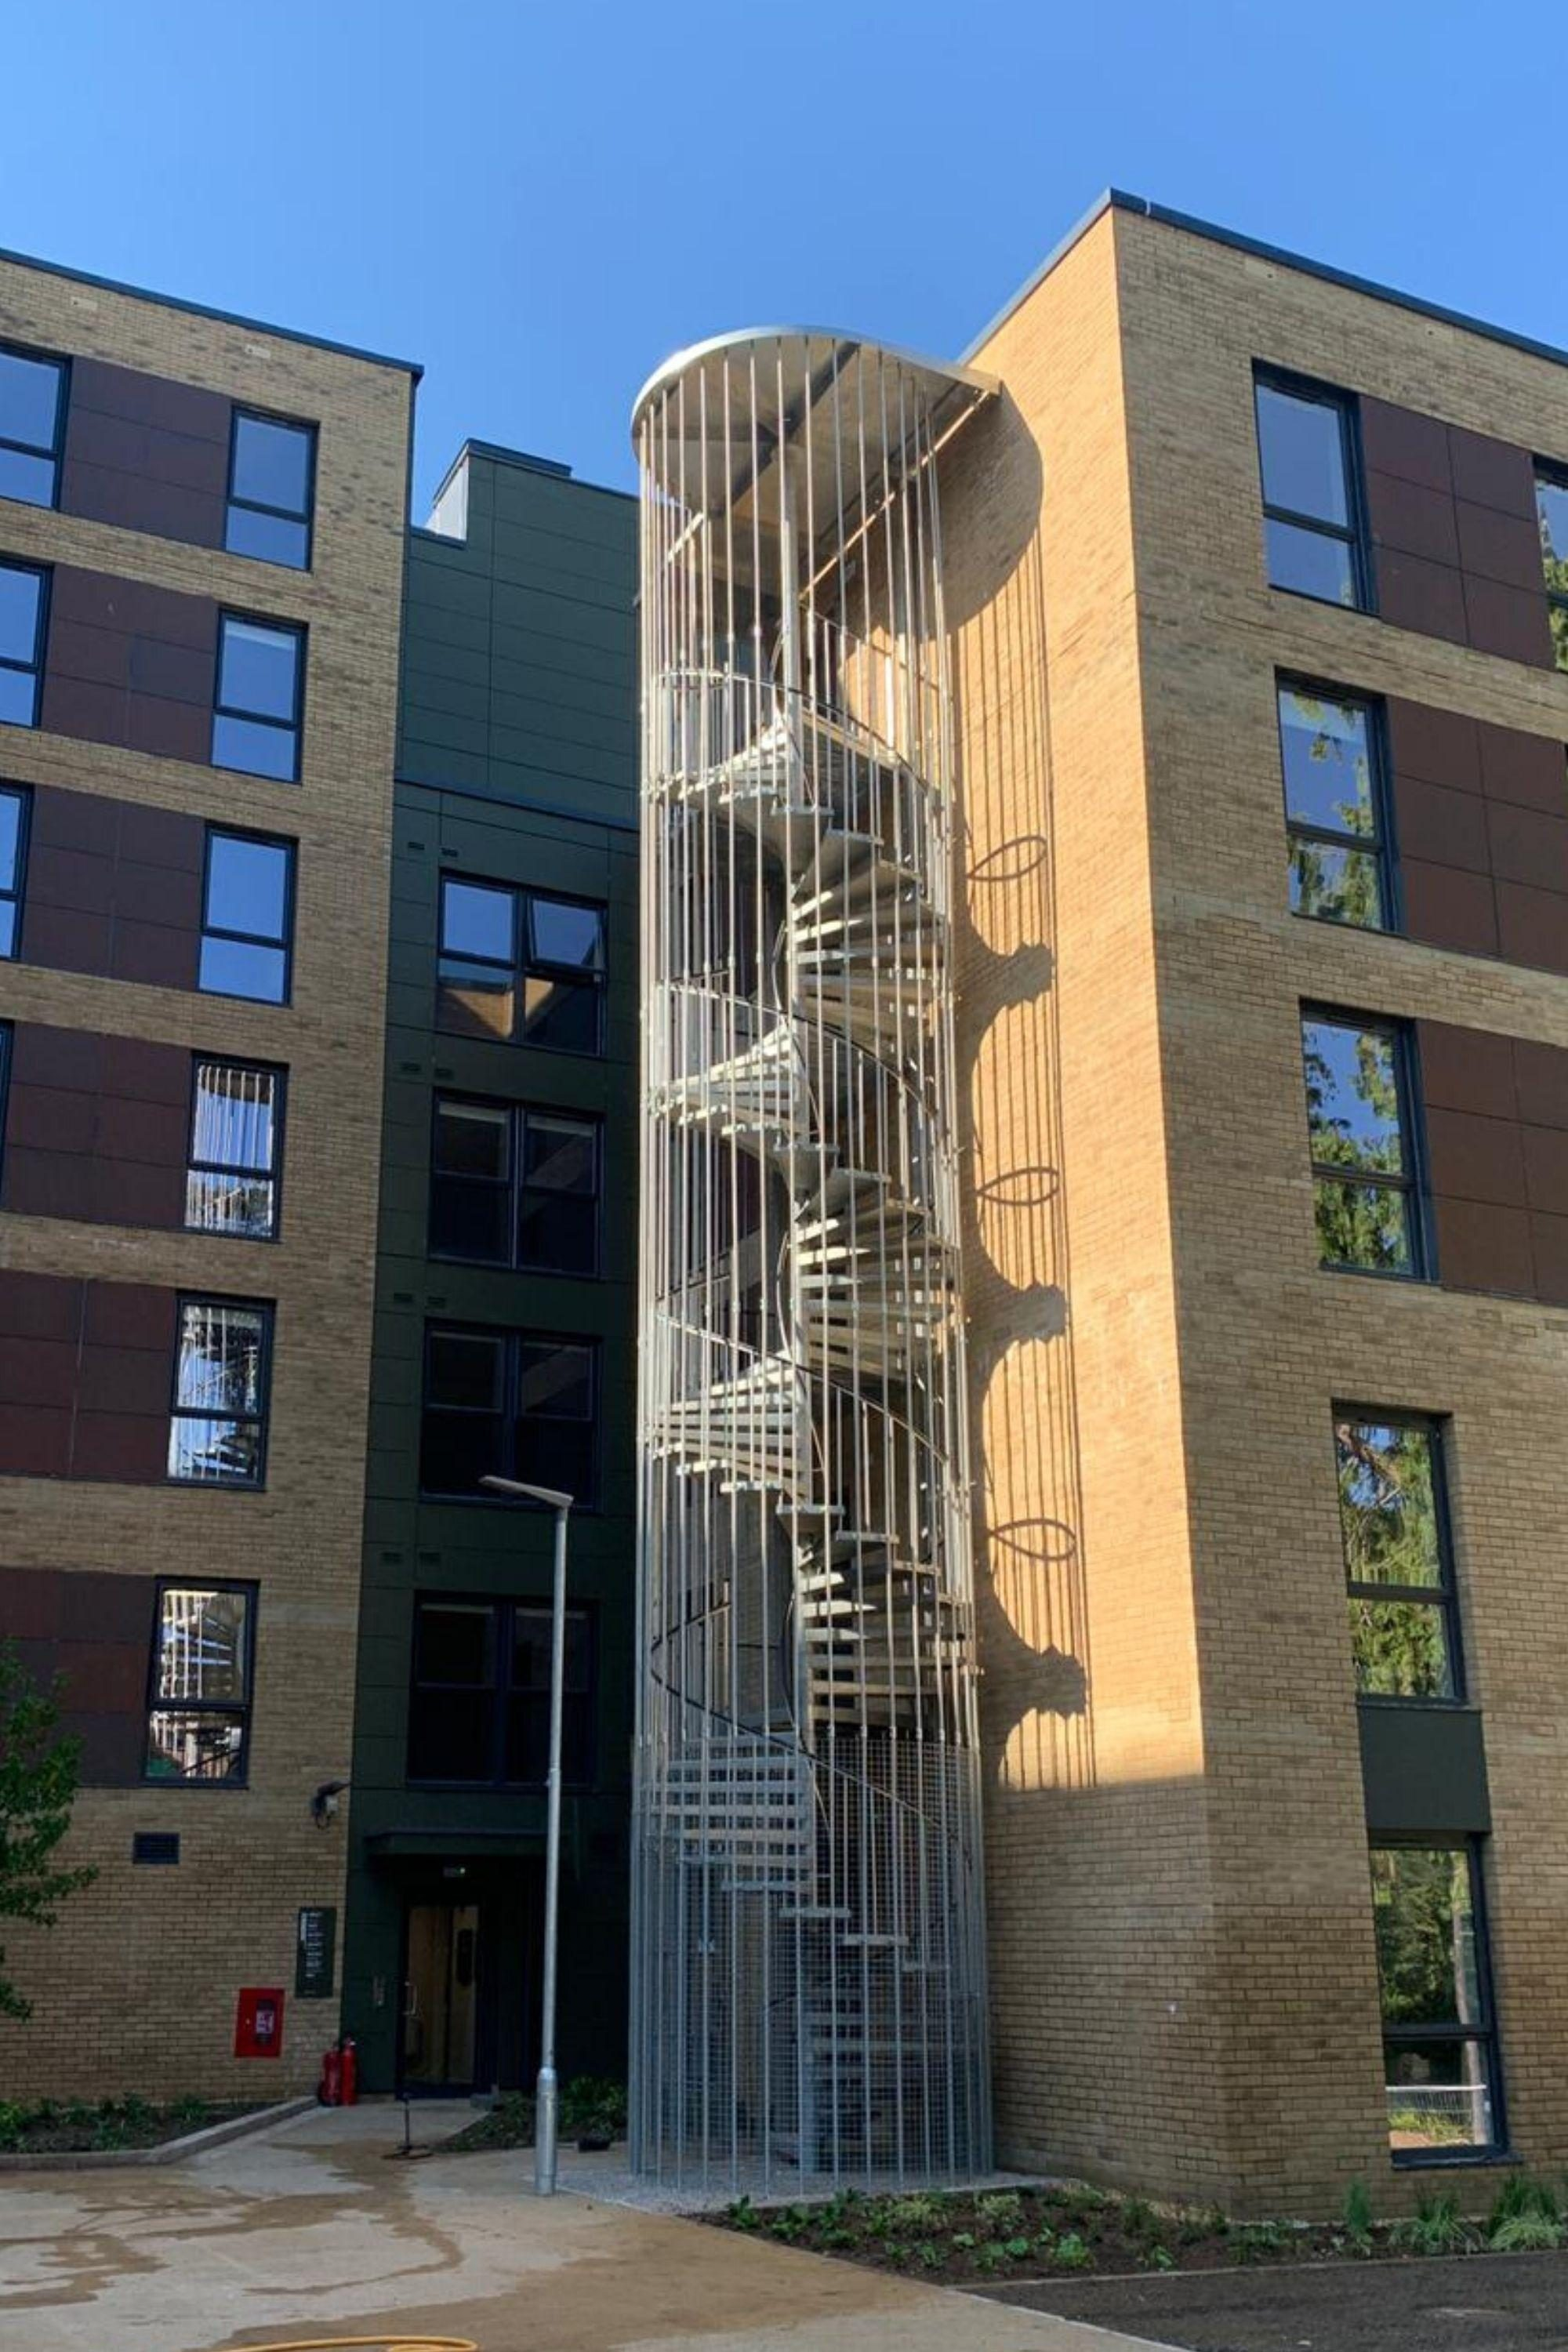 External spiral staircase with enclosure